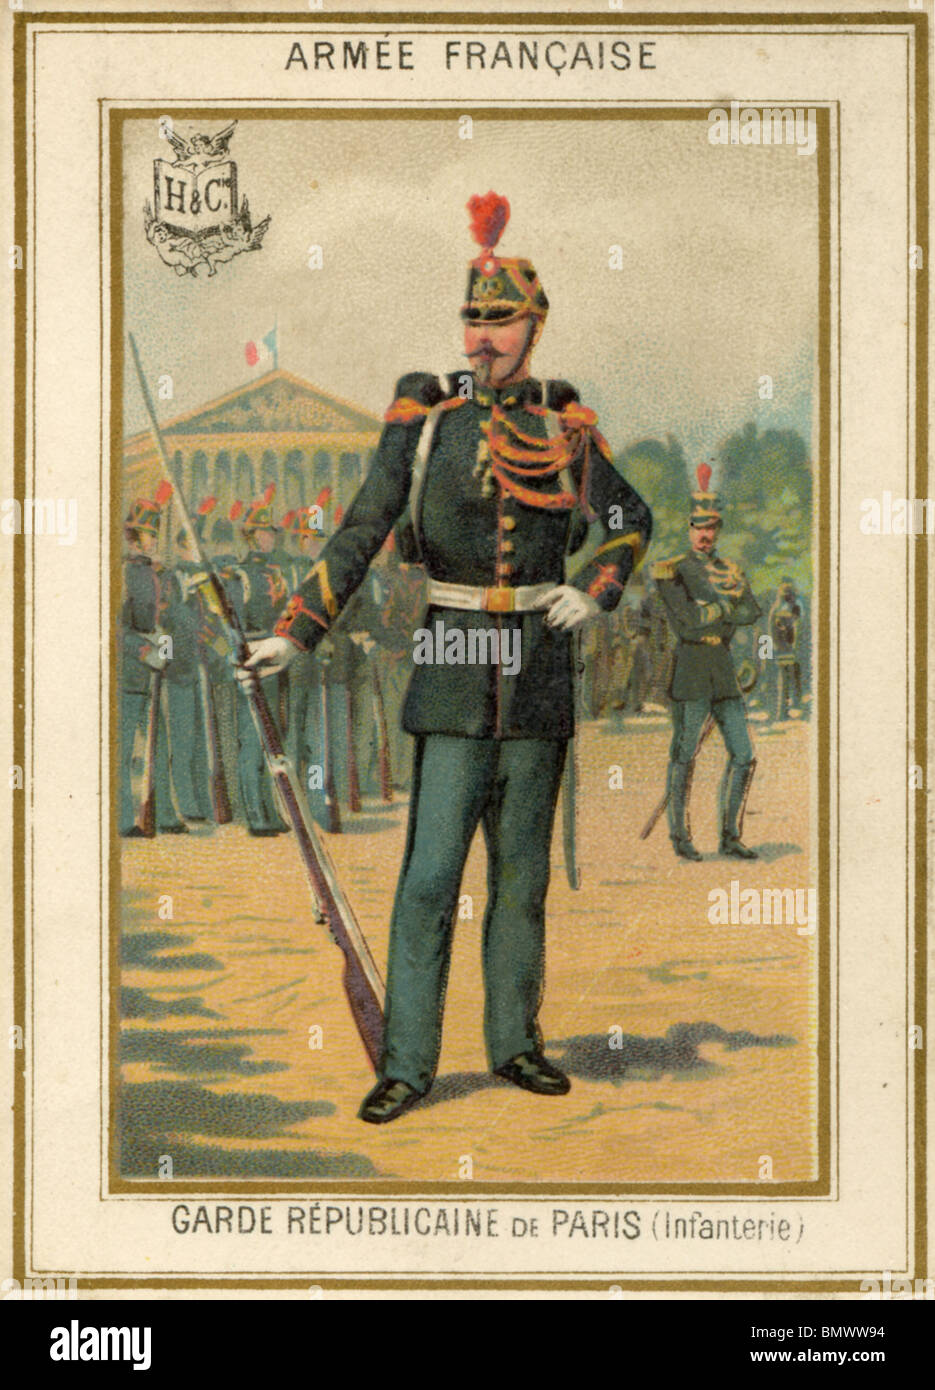 French Army - Republican Guard - Stock Image